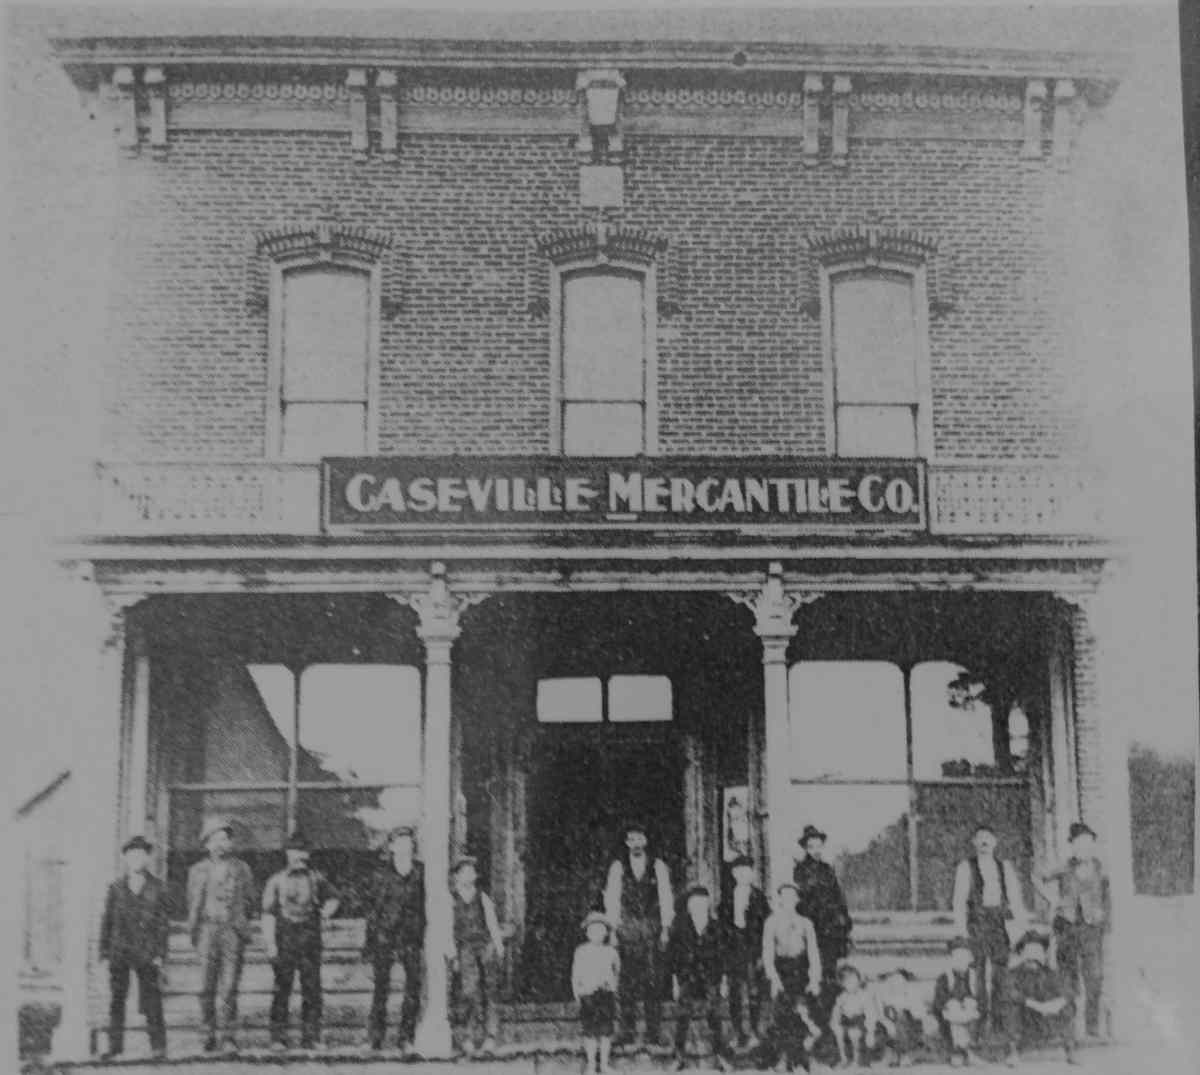 Mystery of Caseville Mercantile Co.